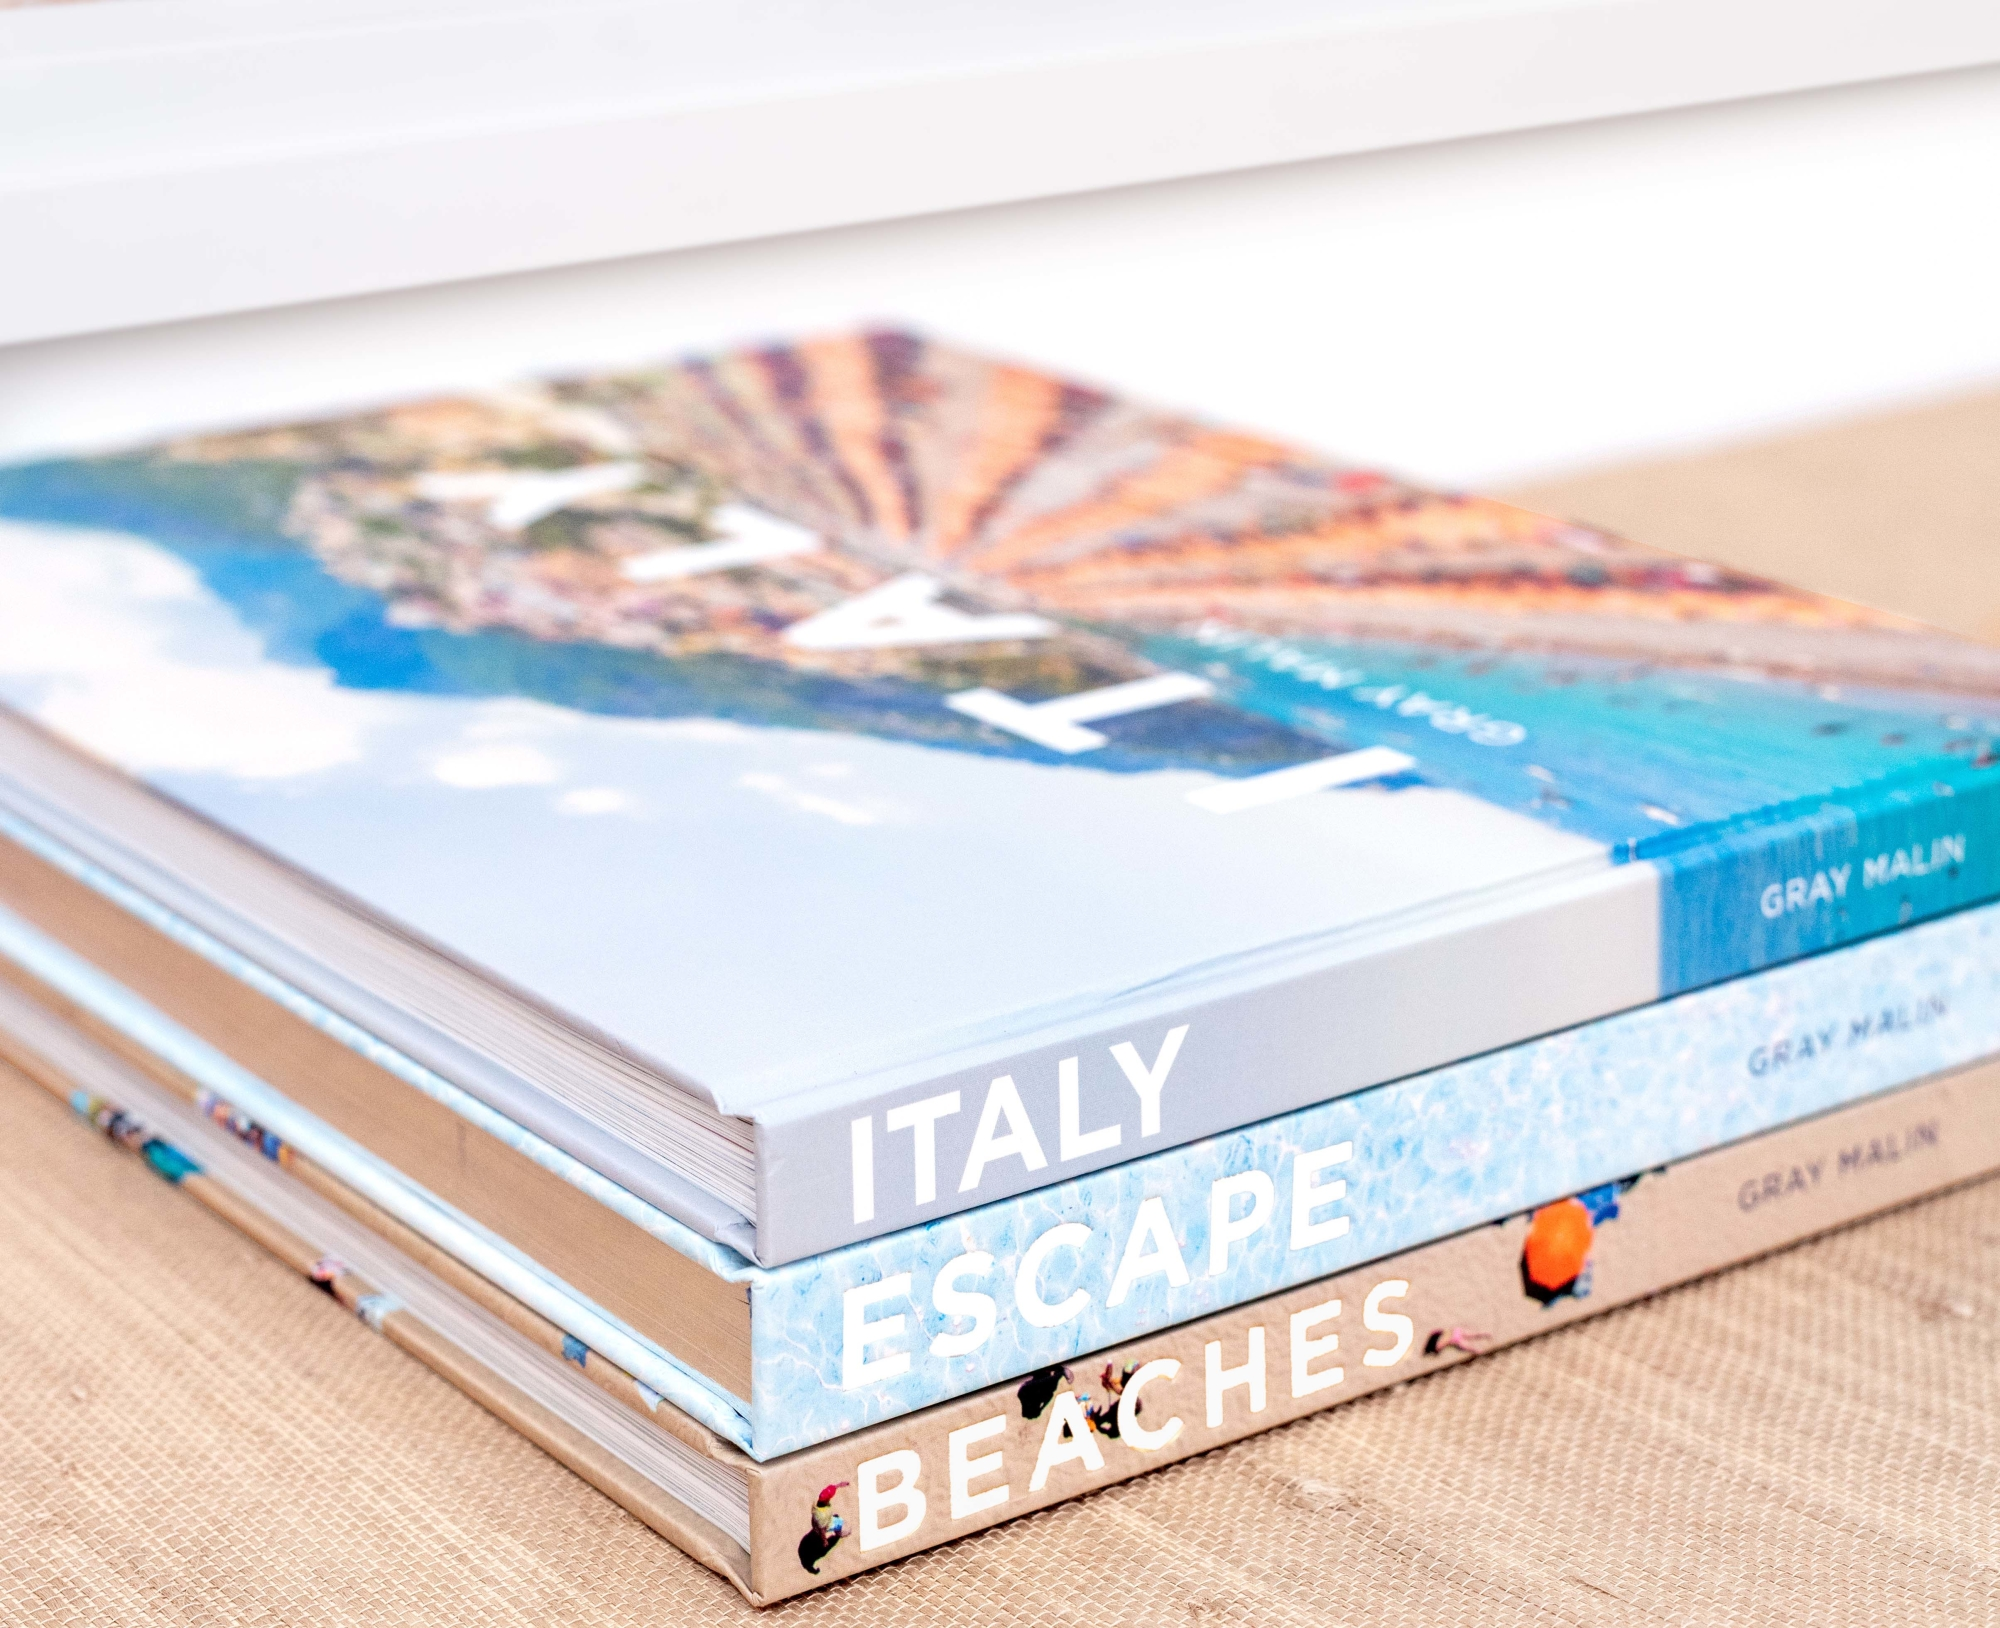 Gray S Top 10 Travel Coffee Table Books To Add To Your Collection Gray Malin